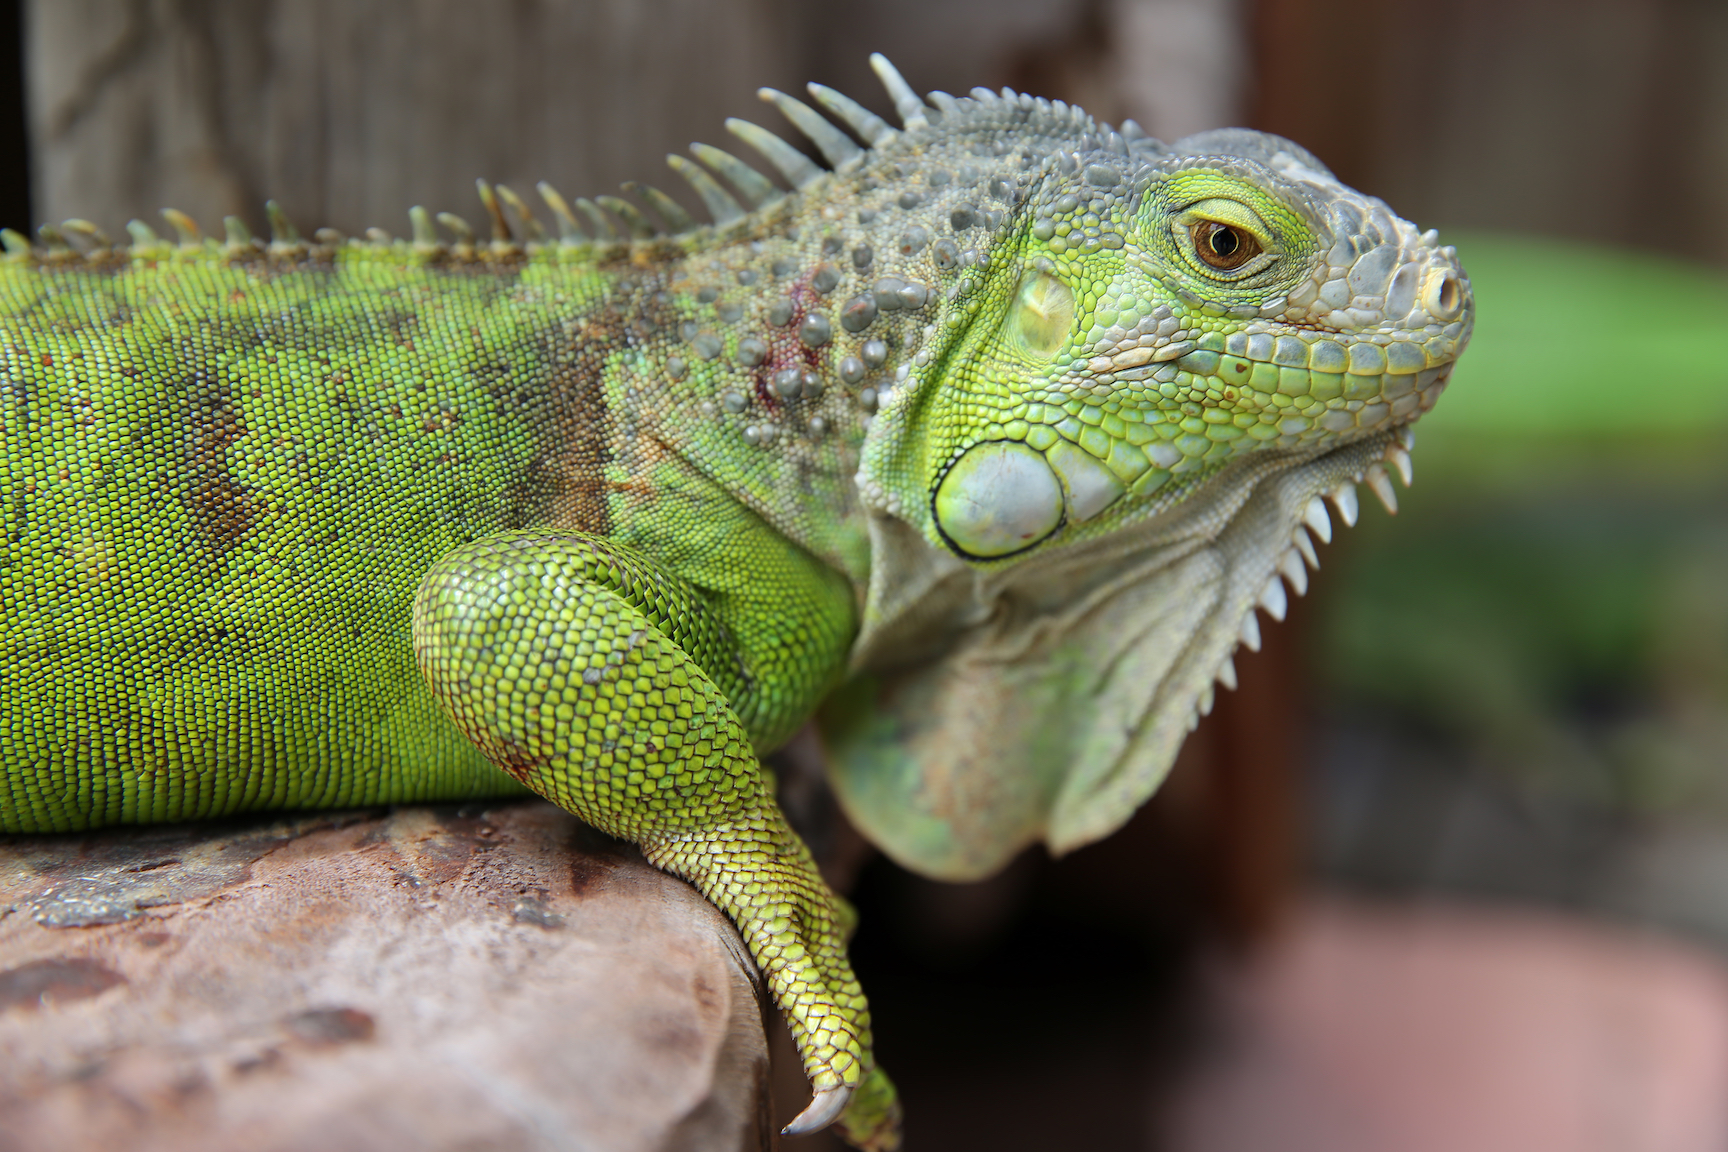 It has become increasingly popular to keep exotic pets such as reptiles and amphibians. But this can pose problems for ill-equipped owners.